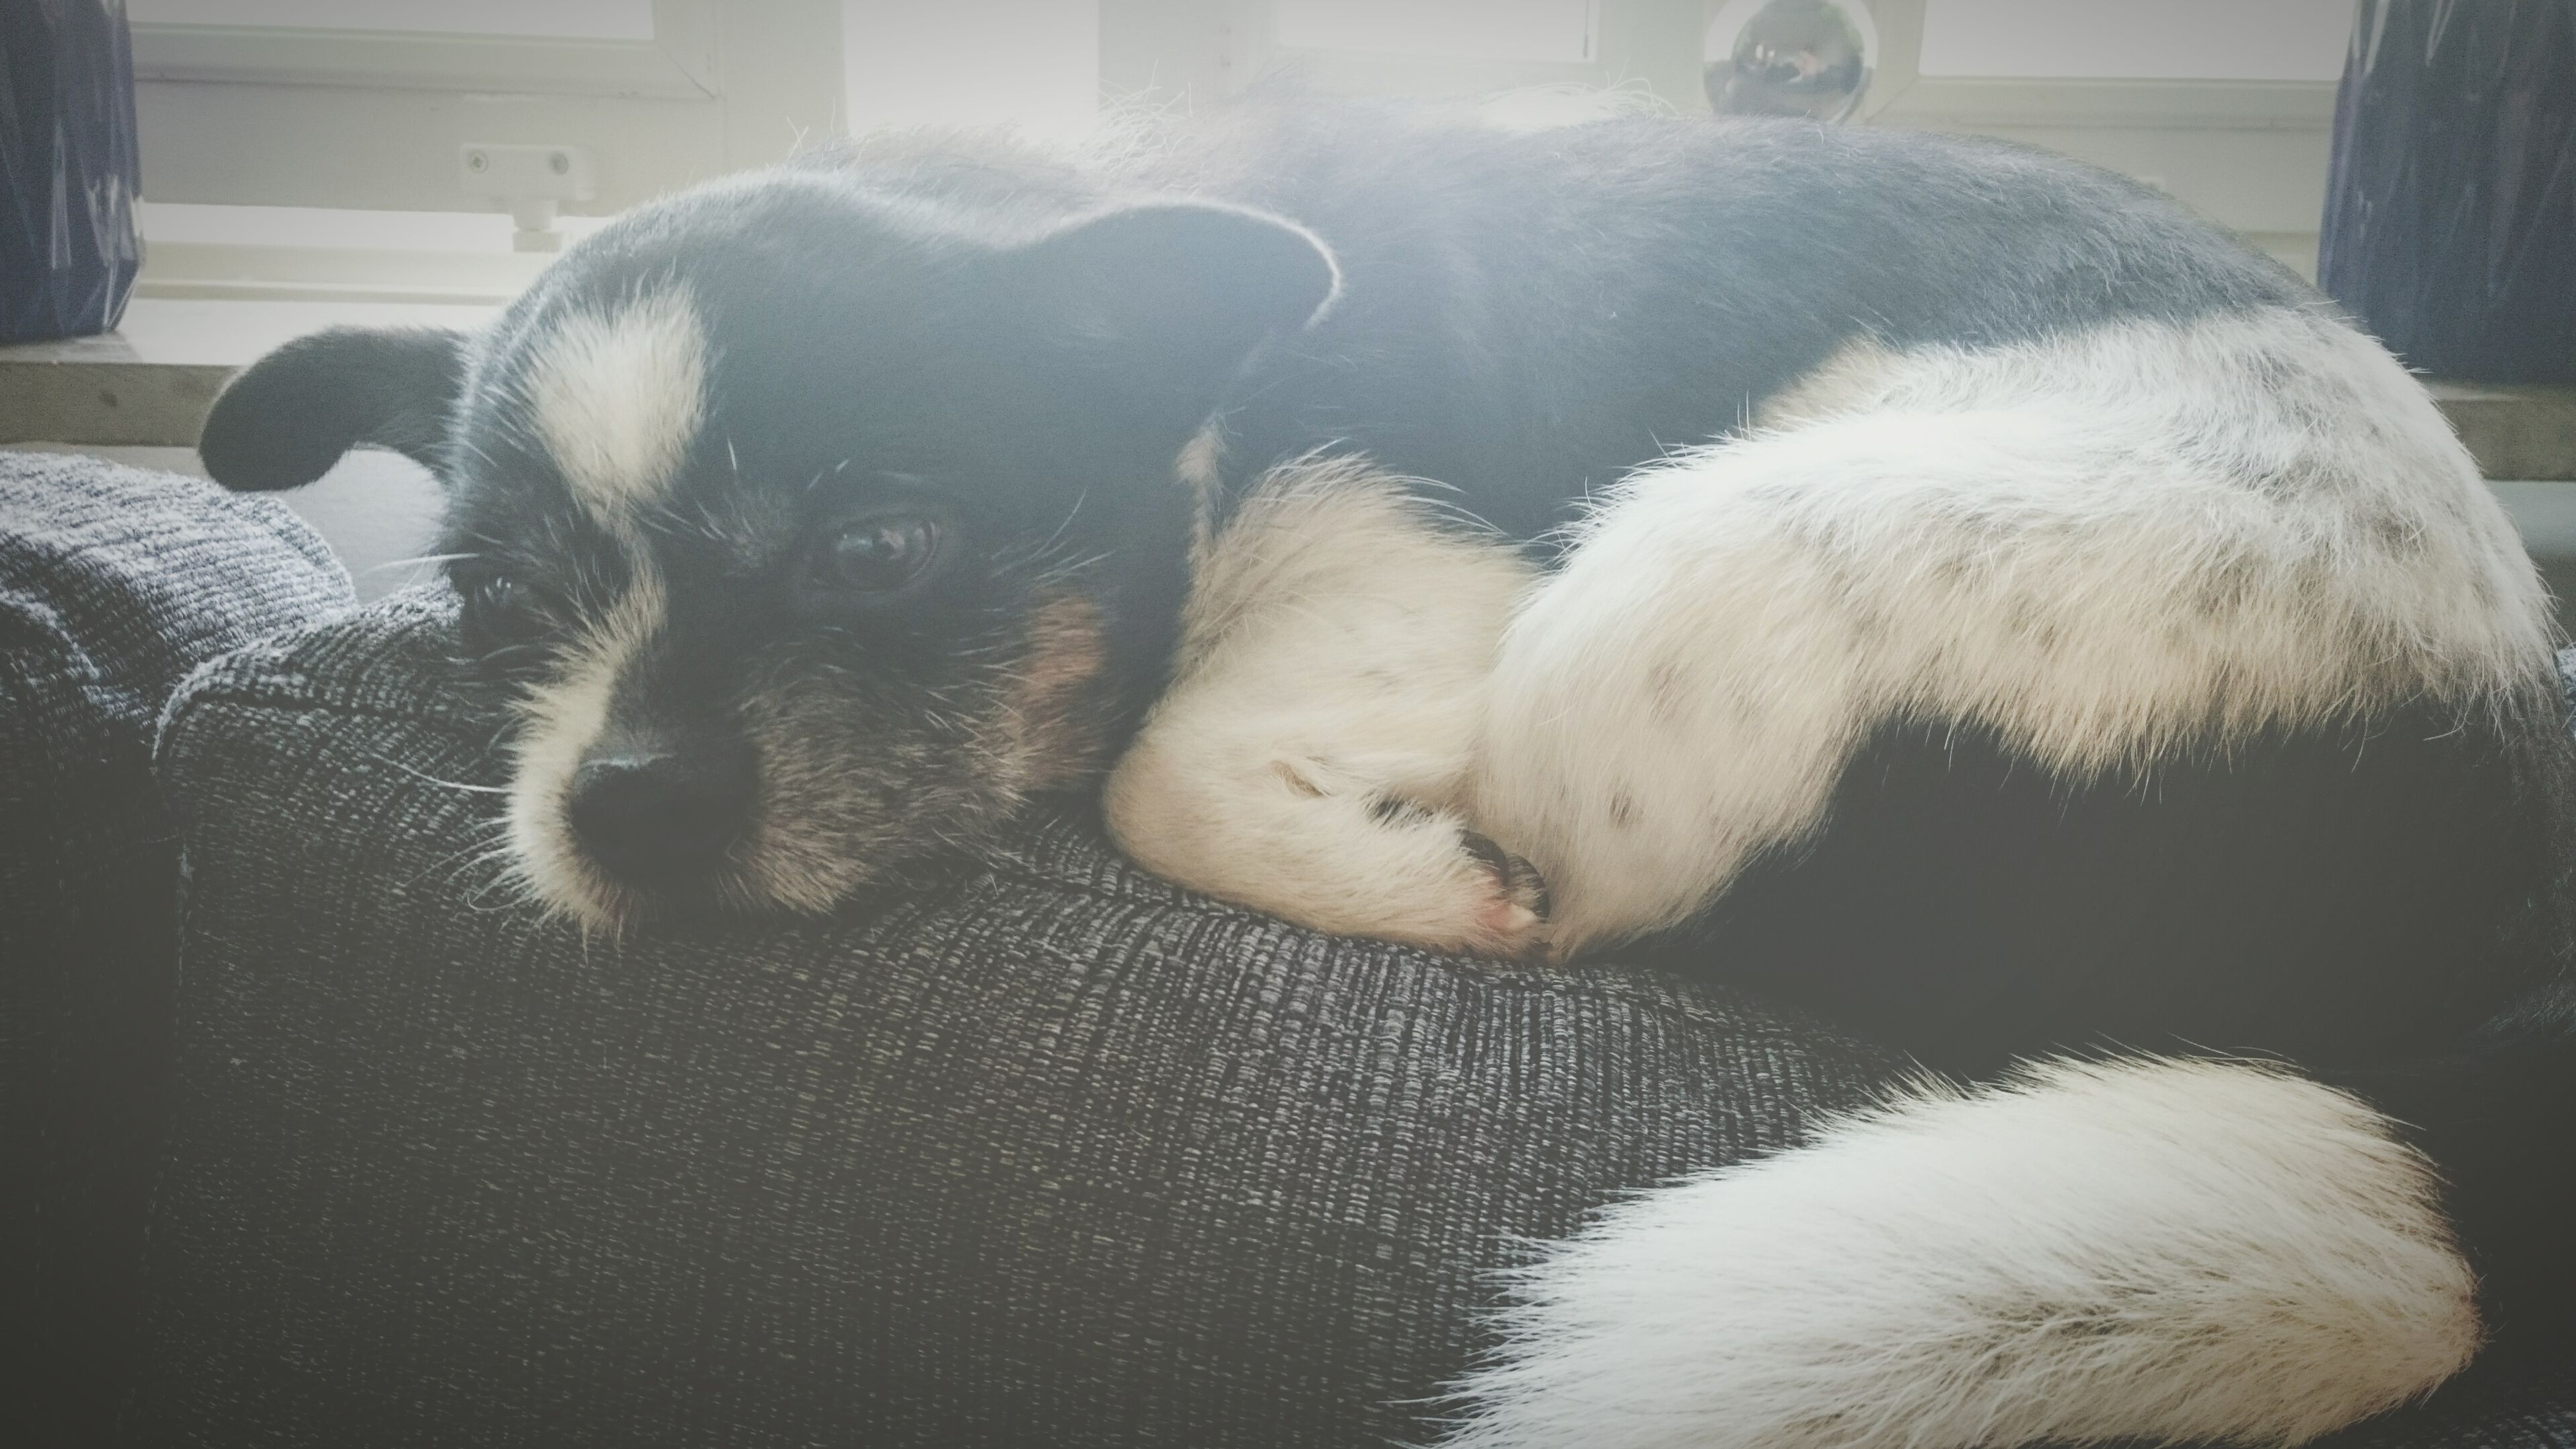 pets, one animal, domestic animals, animal themes, dog, mammal, sleeping, indoors, close-up, zoology, vertebrate, loyalty, resting, relaxation, animal body part, animal, at home, part of, lying down, animal head, pampered pets, selective focus, paw, animal nose, doormat, animal hair, cozy